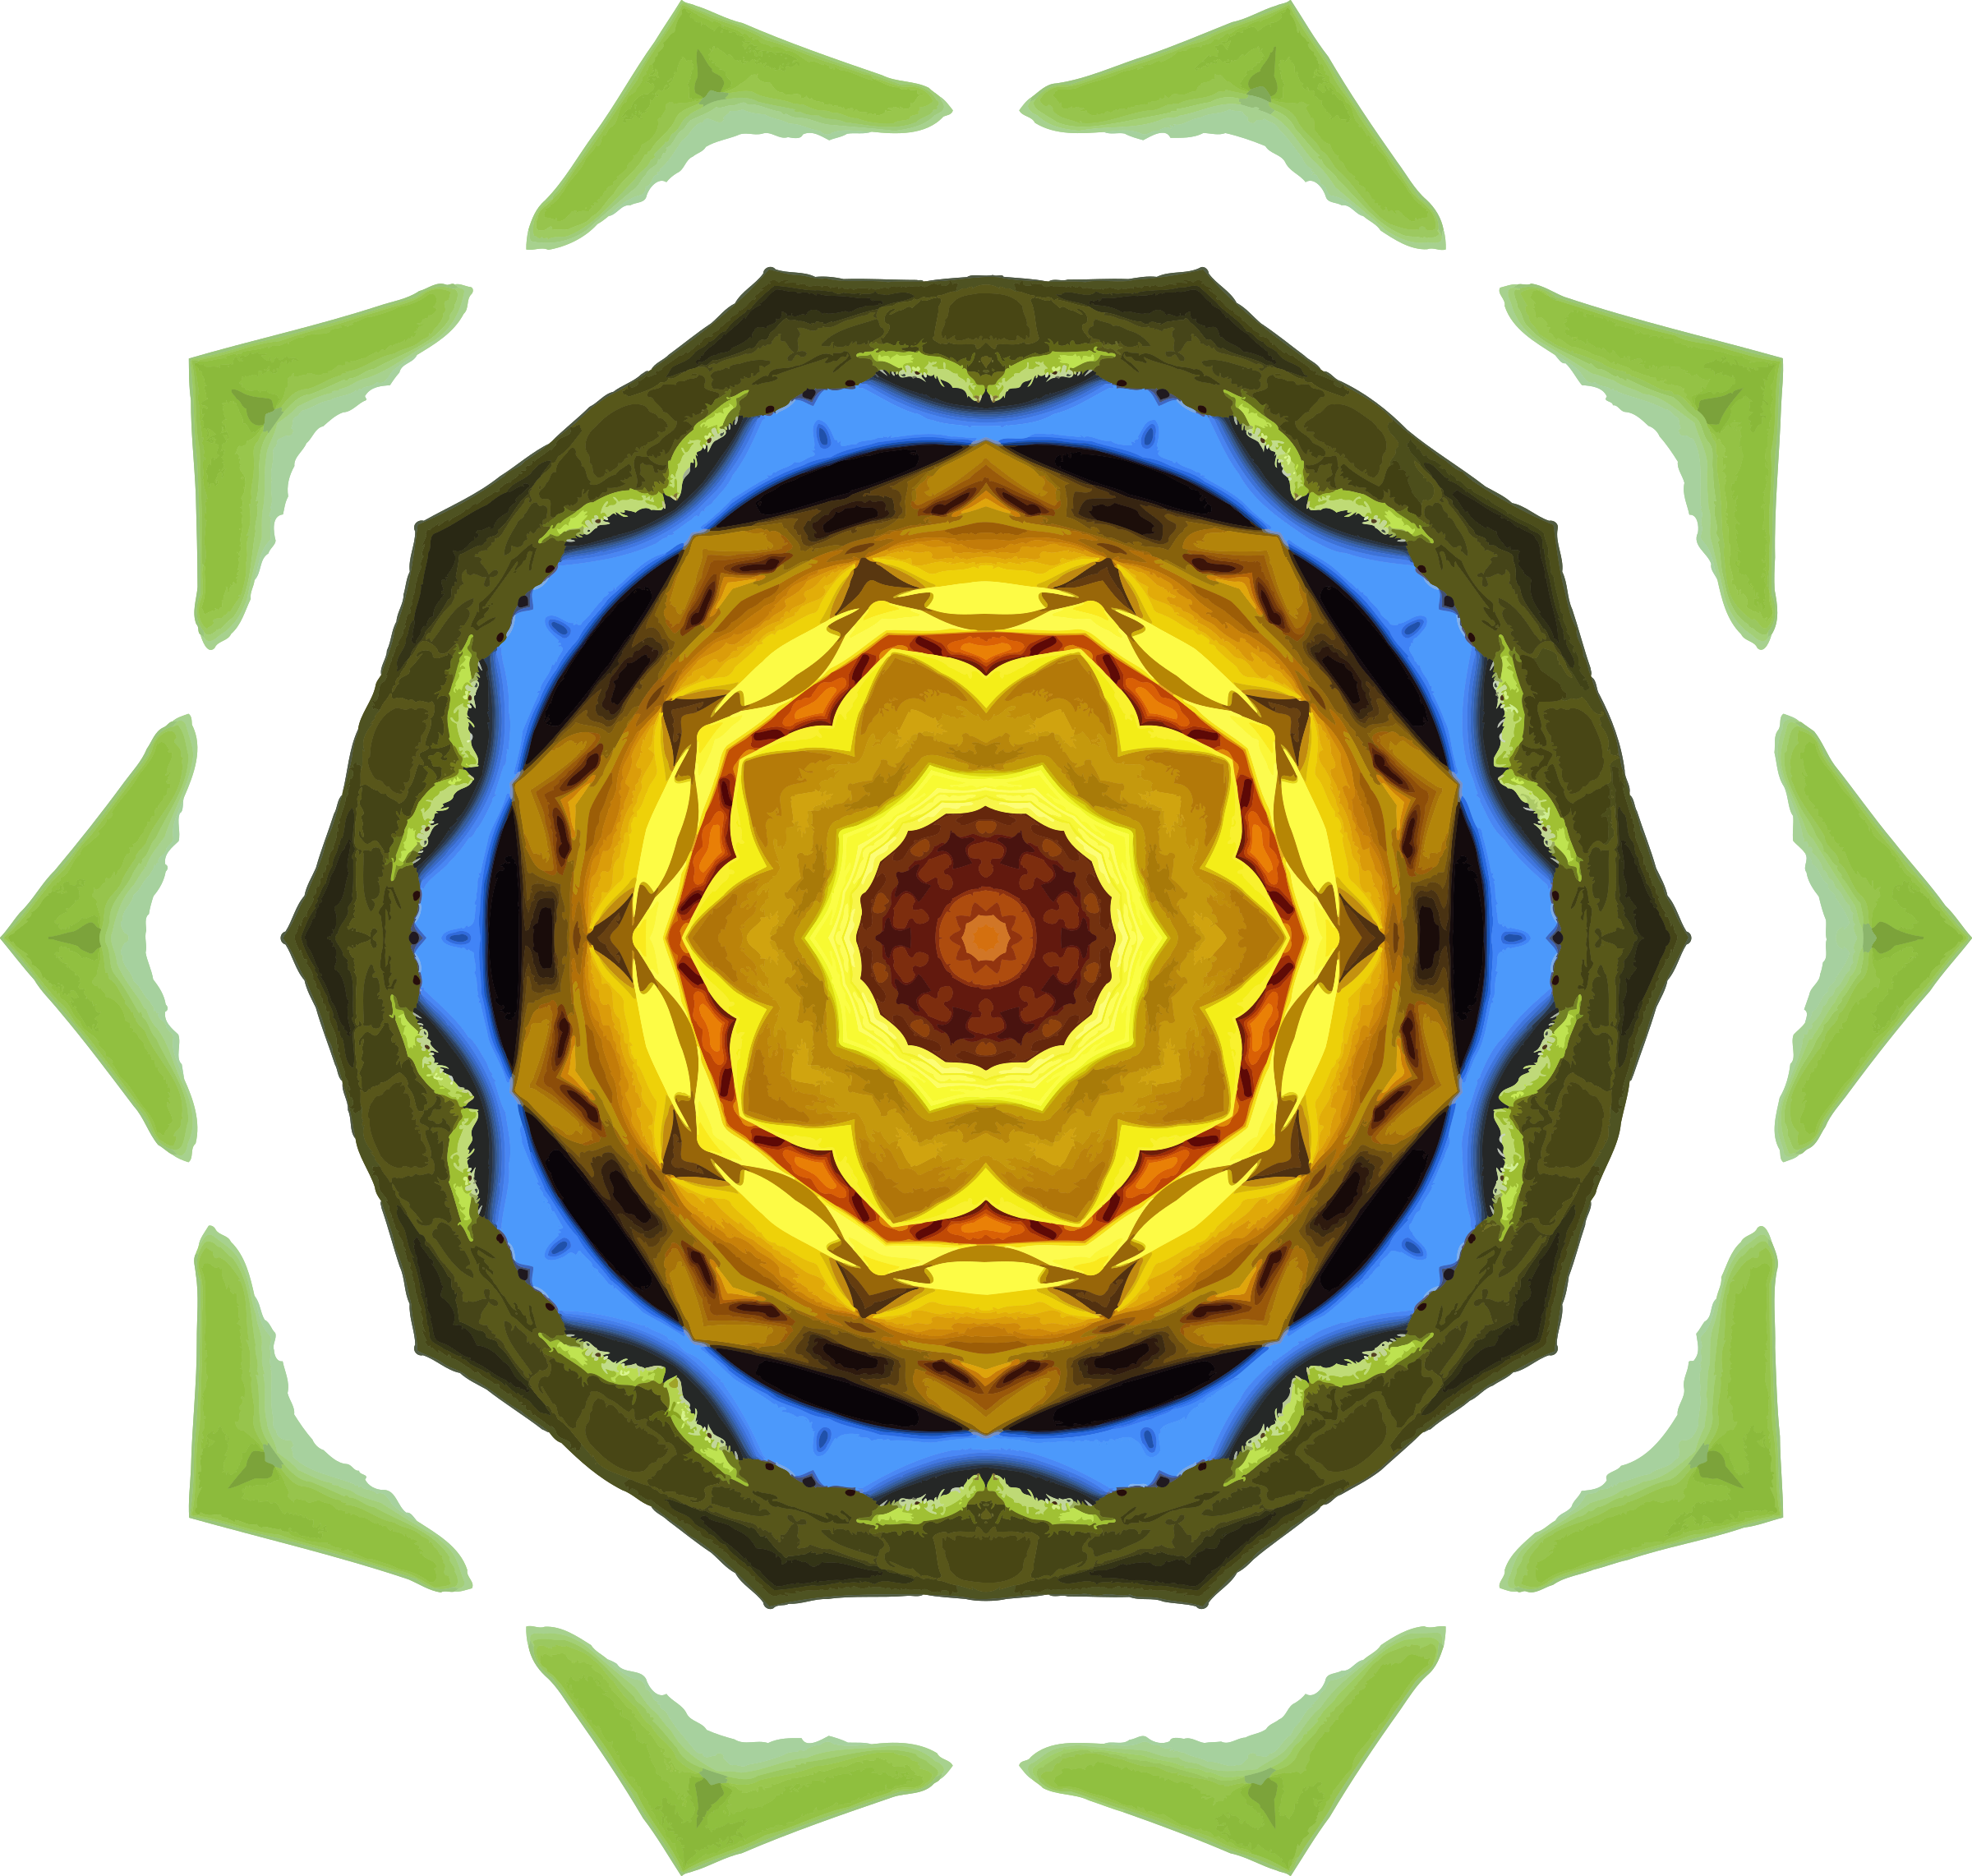 Sunflower kaleidoscope 23 by Firkin